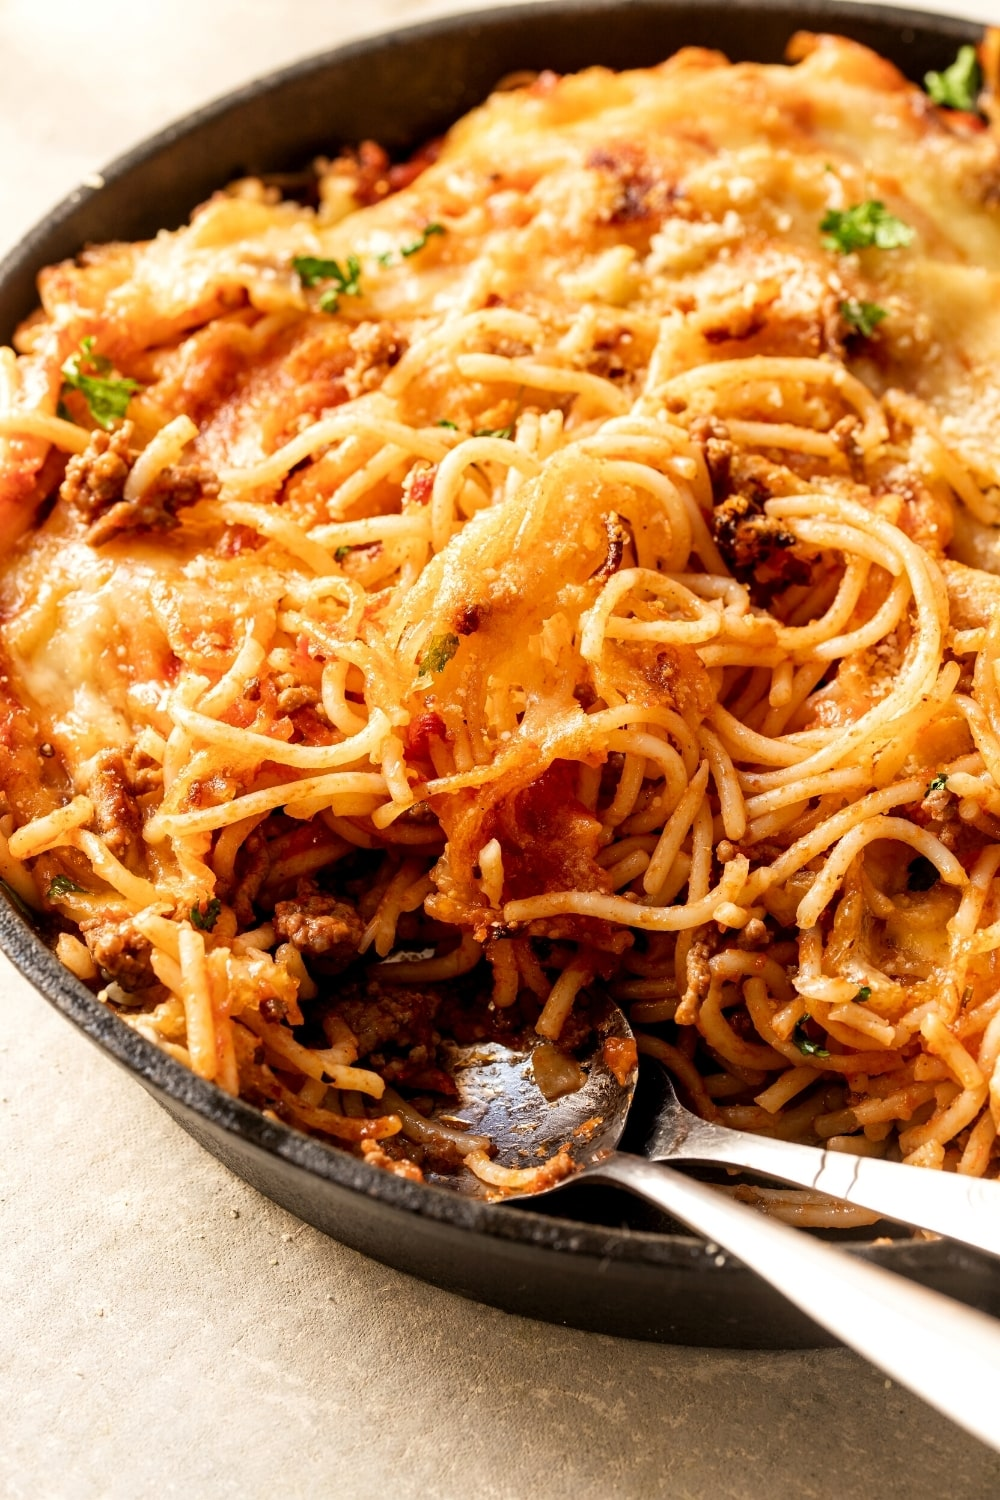 A cast iron skillet with fried spaghetti in it. A spoon and fork or at the front of the skillet with some noodles moved from where they are.